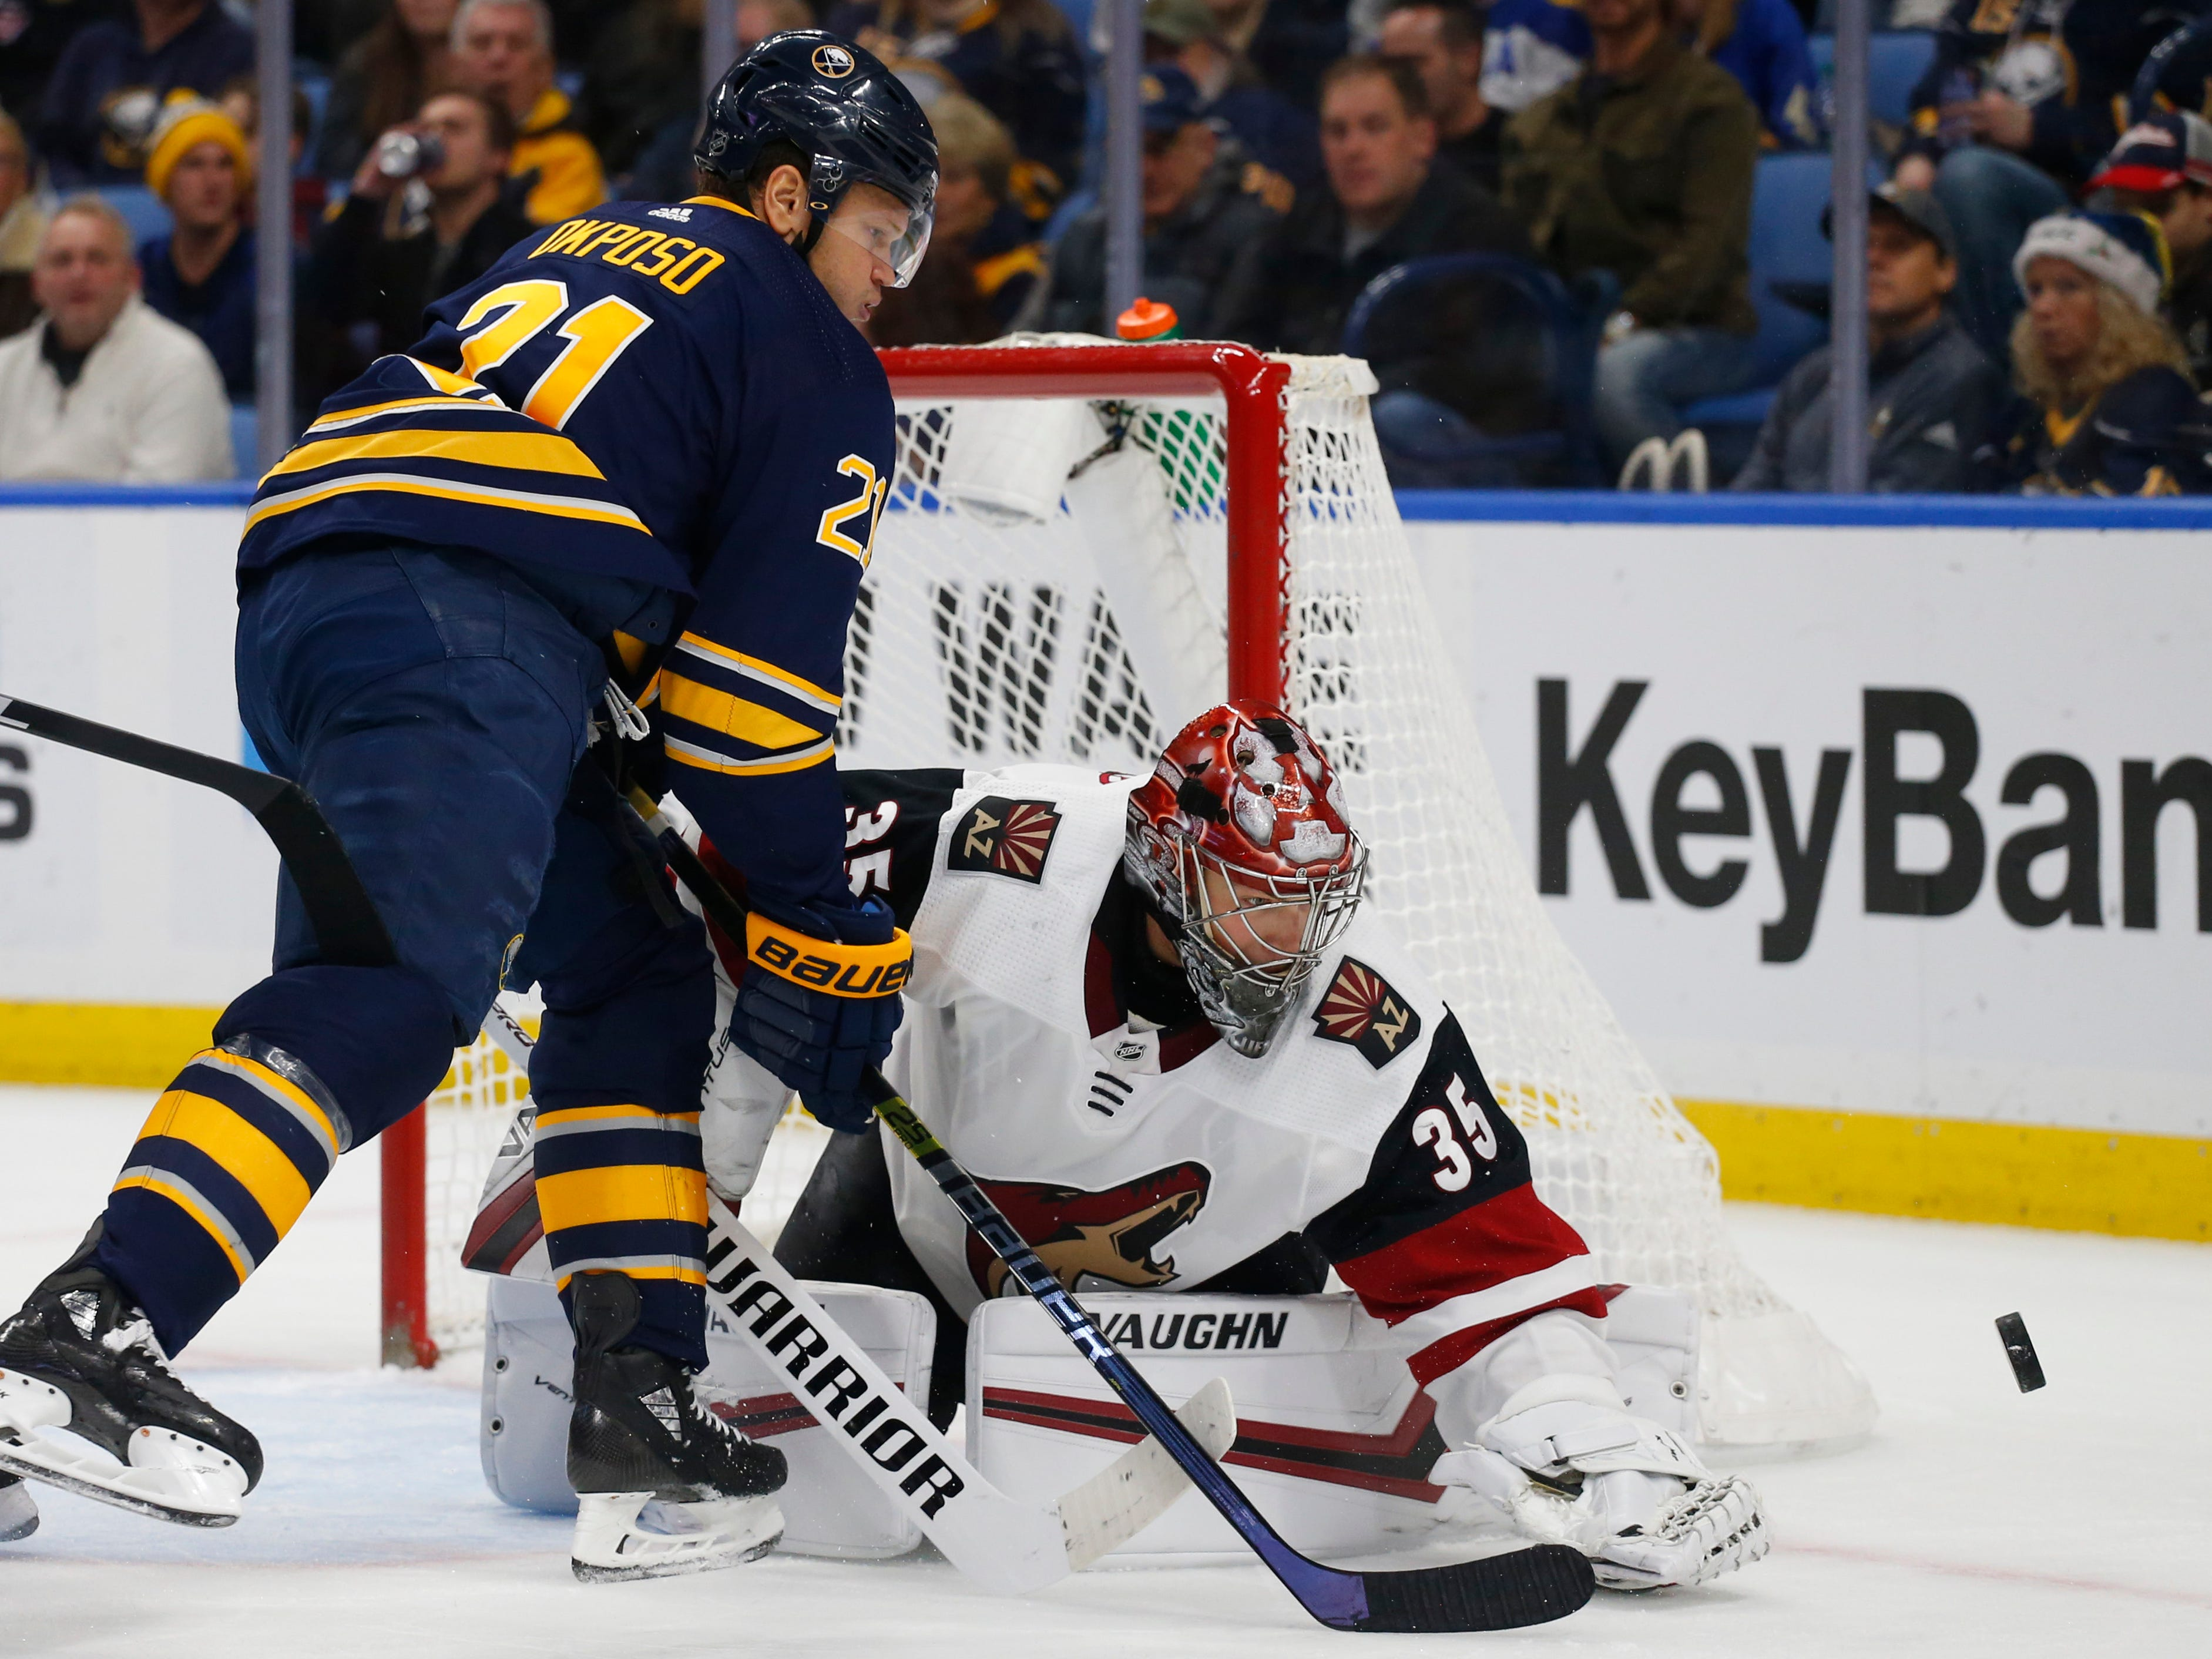 Buffalo Sabres forward Kyle Okposo (21) is stopped by Arizona Coyotes goalie Darcy Kuemper (35) during the first period of an NHL hockey game, Thursday, Dec. 13, 2018, in Buffalo N.Y. (AP Photo/Jeffrey T. Barnes)